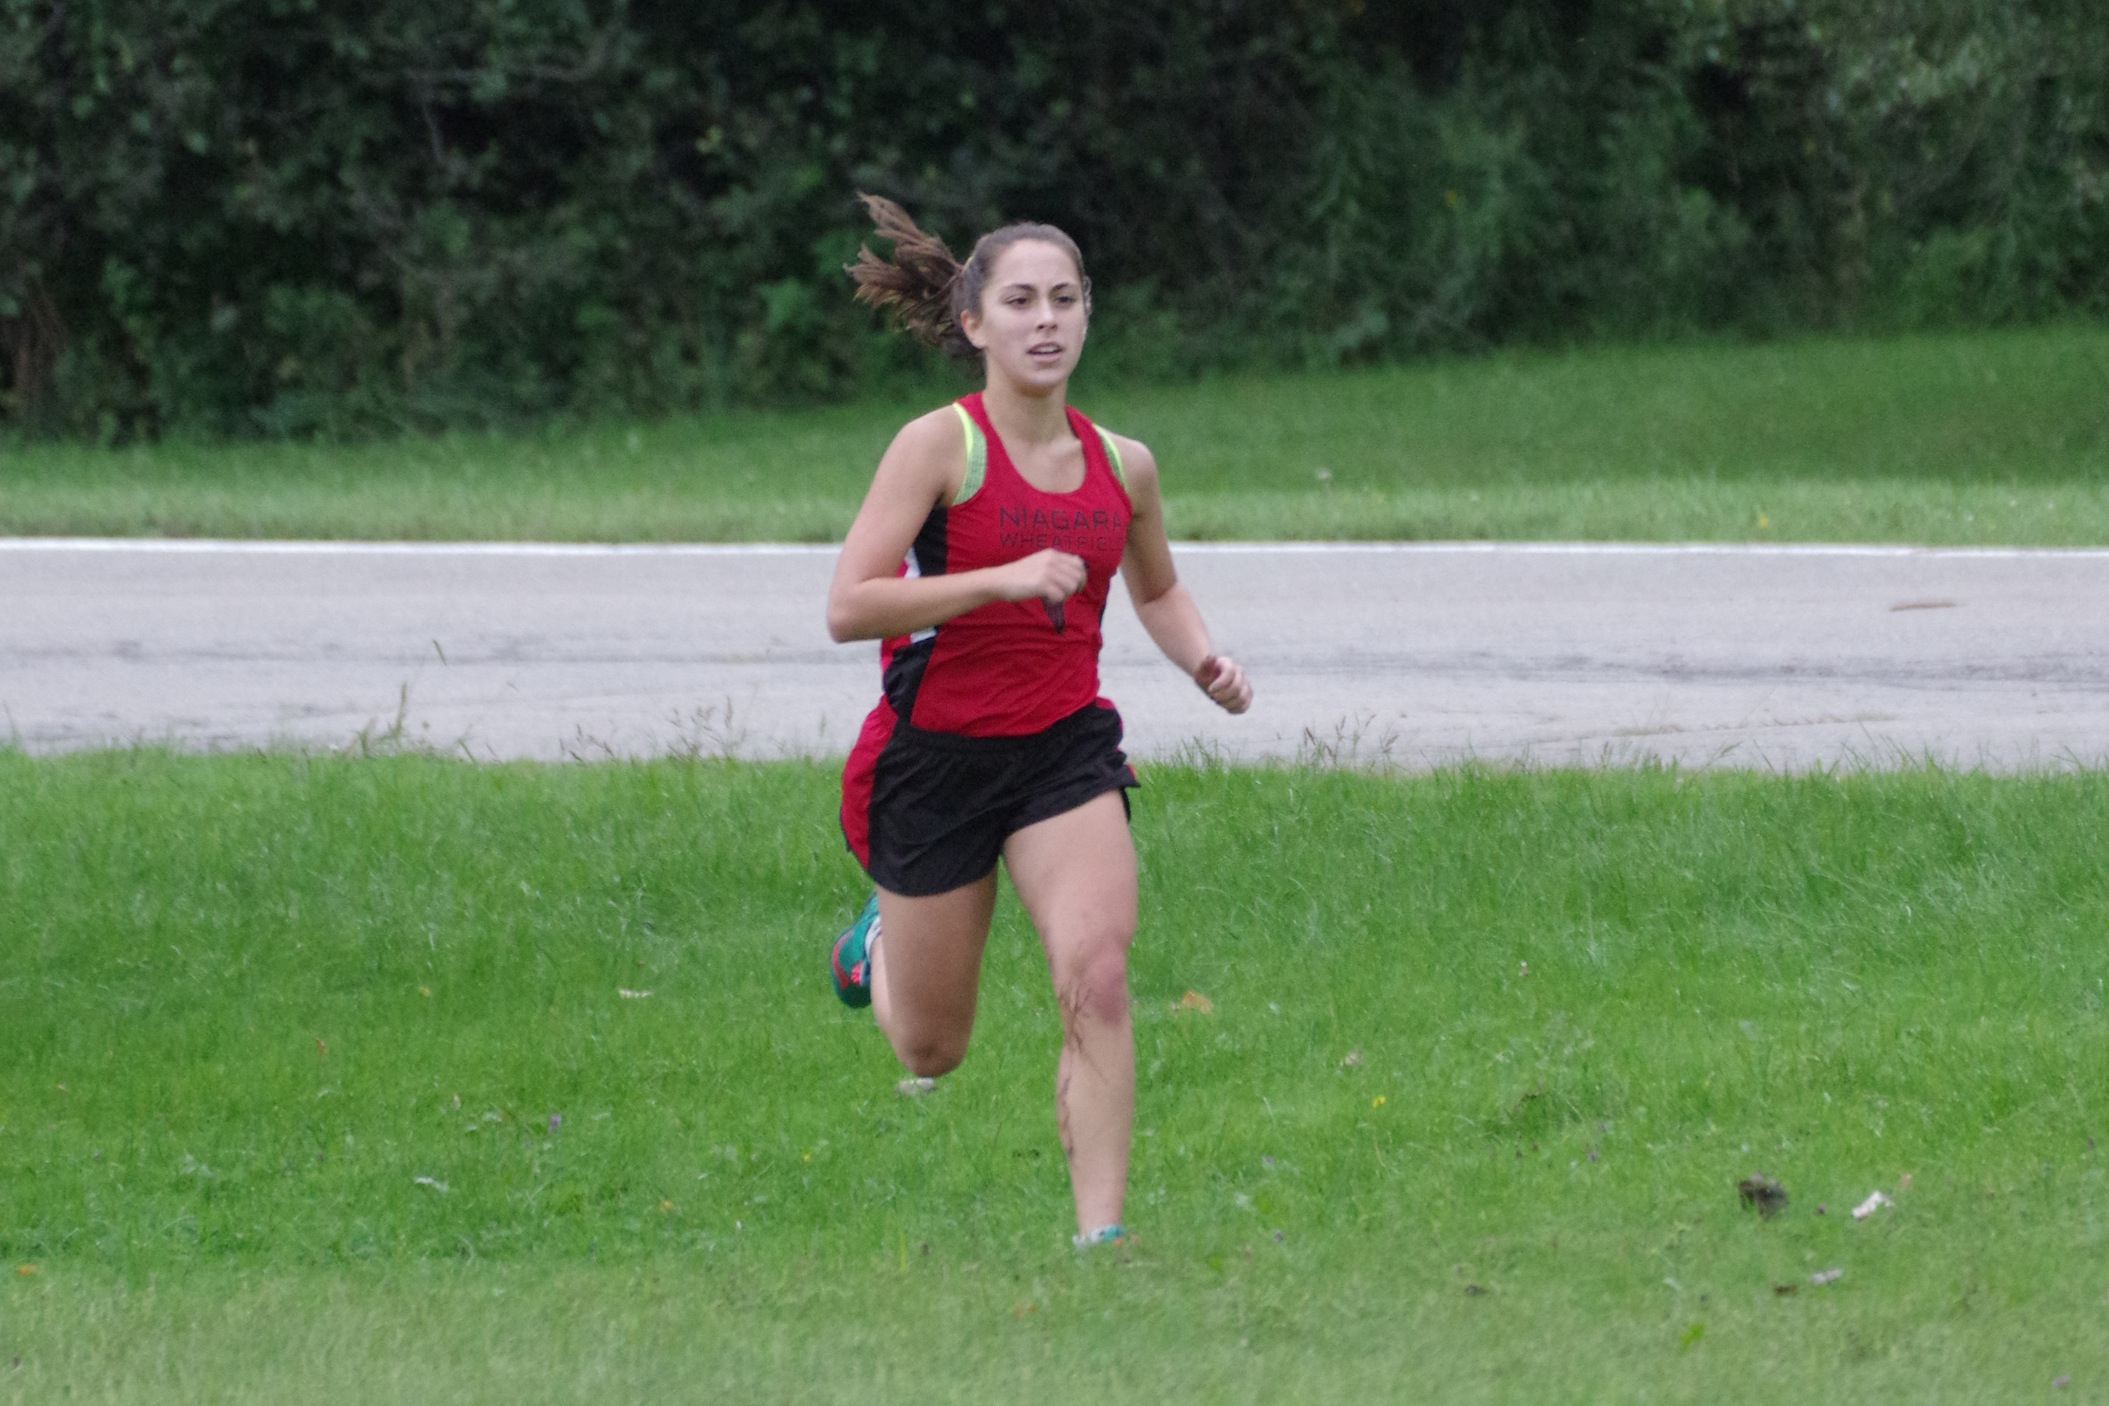 Victoria Achtziger-Hughes running in action during a recent meet. (Photo by Larry Austin)